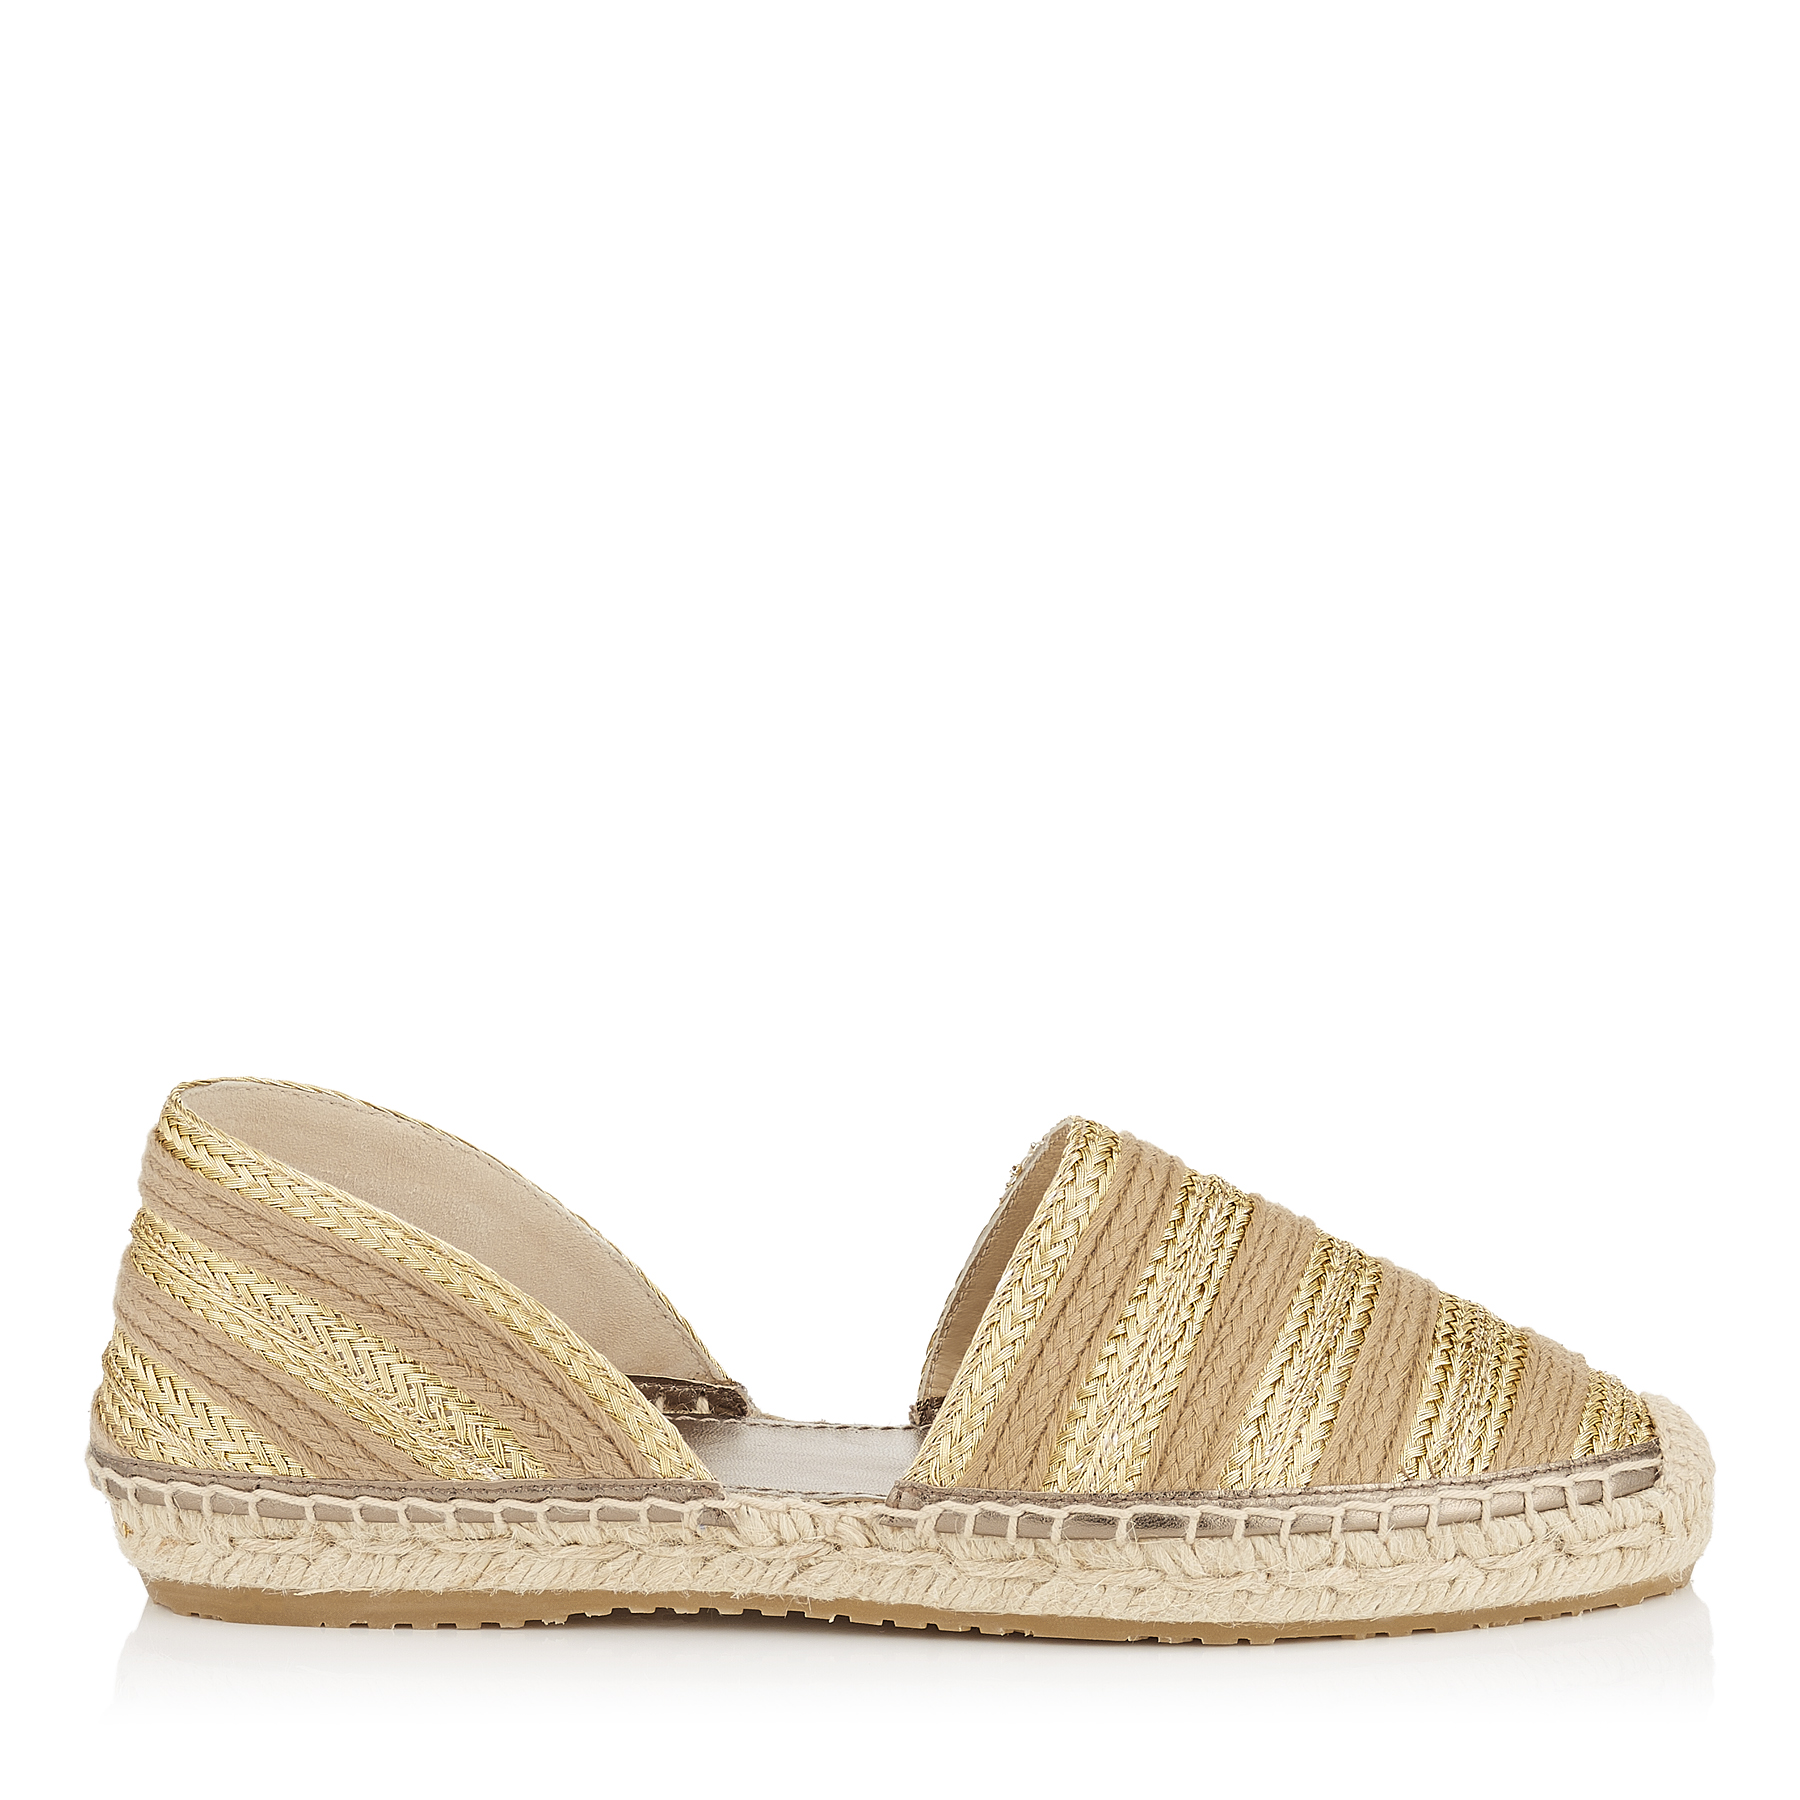 DREYA Gold Mix Striped Metallic Braided Rope Espadrilles by Jimmy Choo